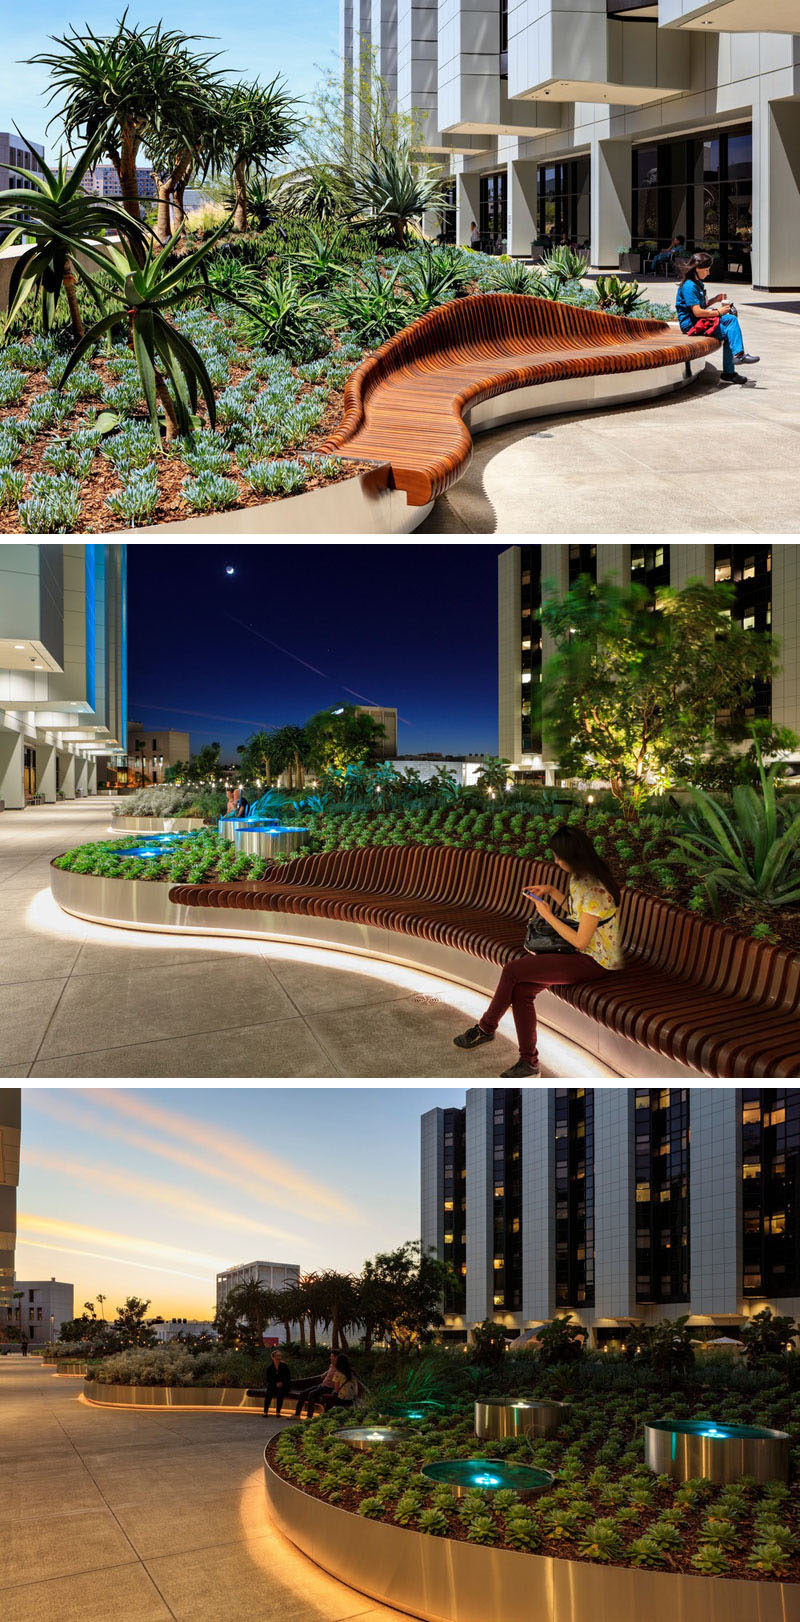 In this landscaped garden, curved wood benches mimic the shape of the planters and add a second sculptural design to the gardens. At night, hidden lighting lights up the edge of the planters.